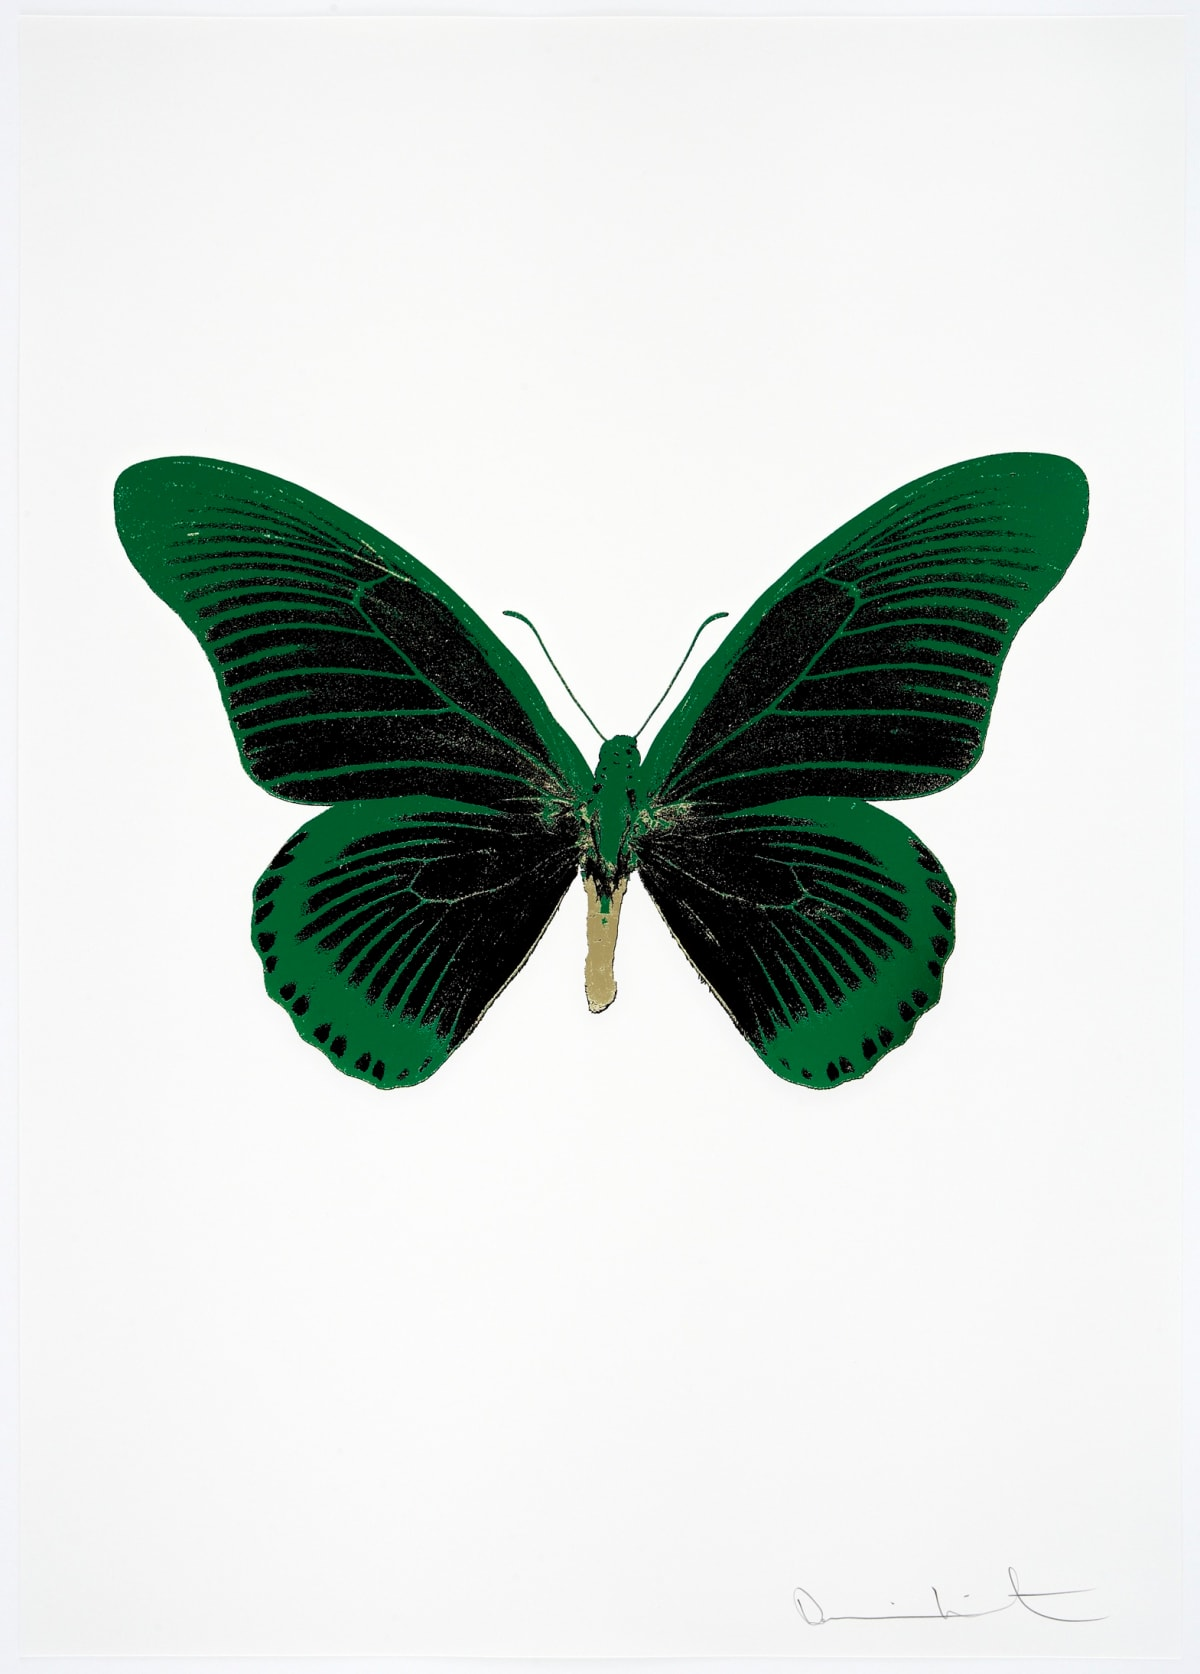 Damien Hirst The Souls IV - Raven Black/Emerald Green/Cool Gold, 2010 3 colour foil block on 300gsm Arches 88 archival paper. Signed and numbered. Published by Paul Stolper and Other Criteria 72 x 51cm OC8051 / 1418-74 Edition of 15